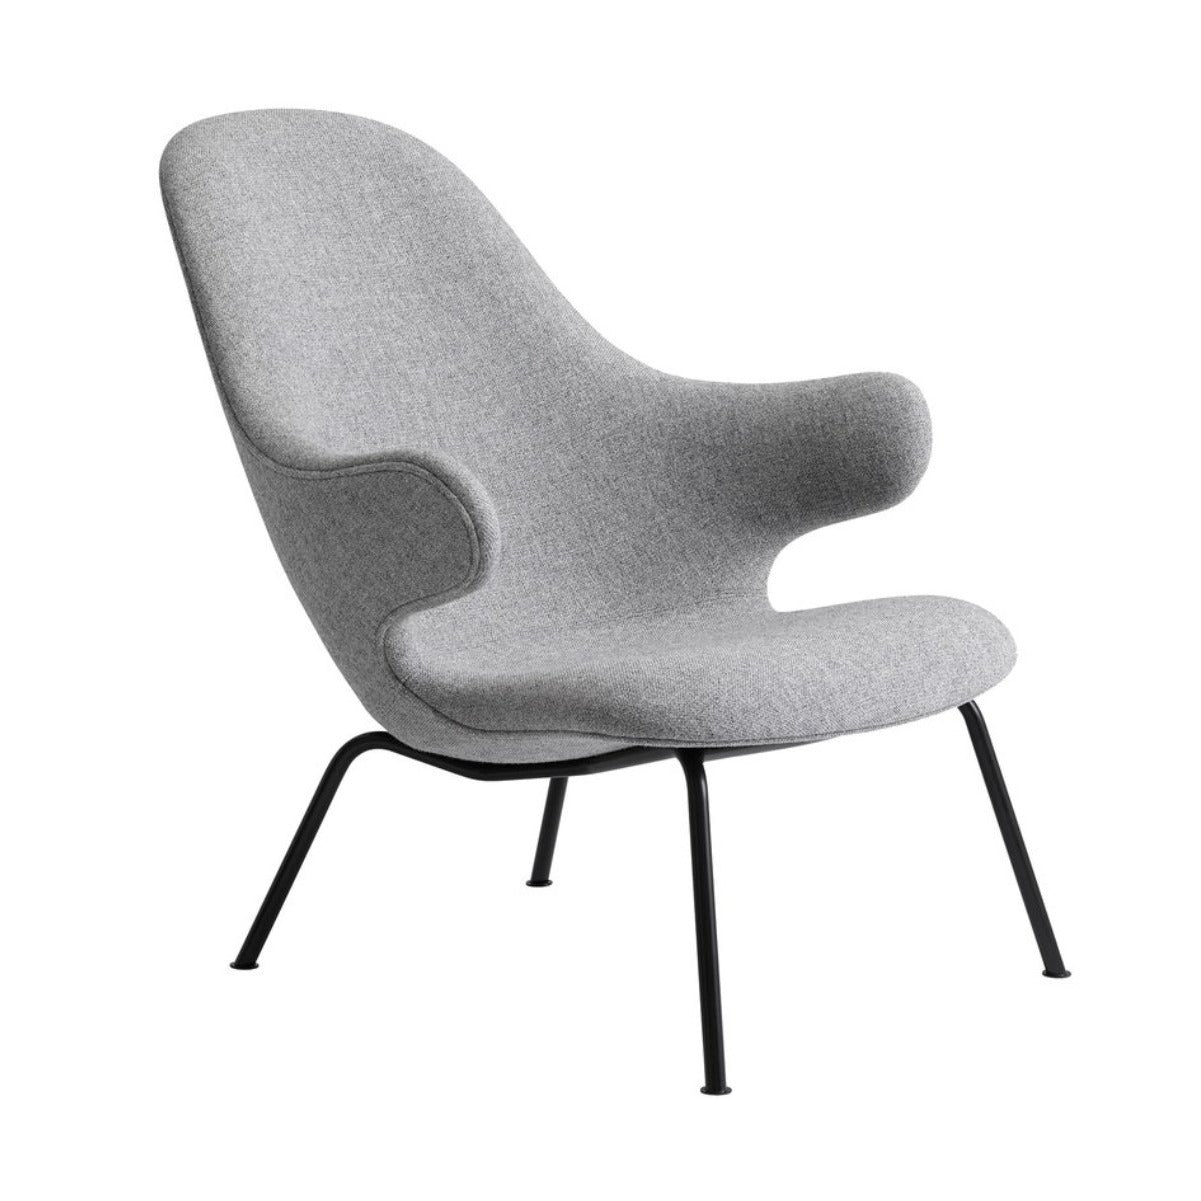 &Tradition Catch JH14 lounge chair, hallingdal65/130